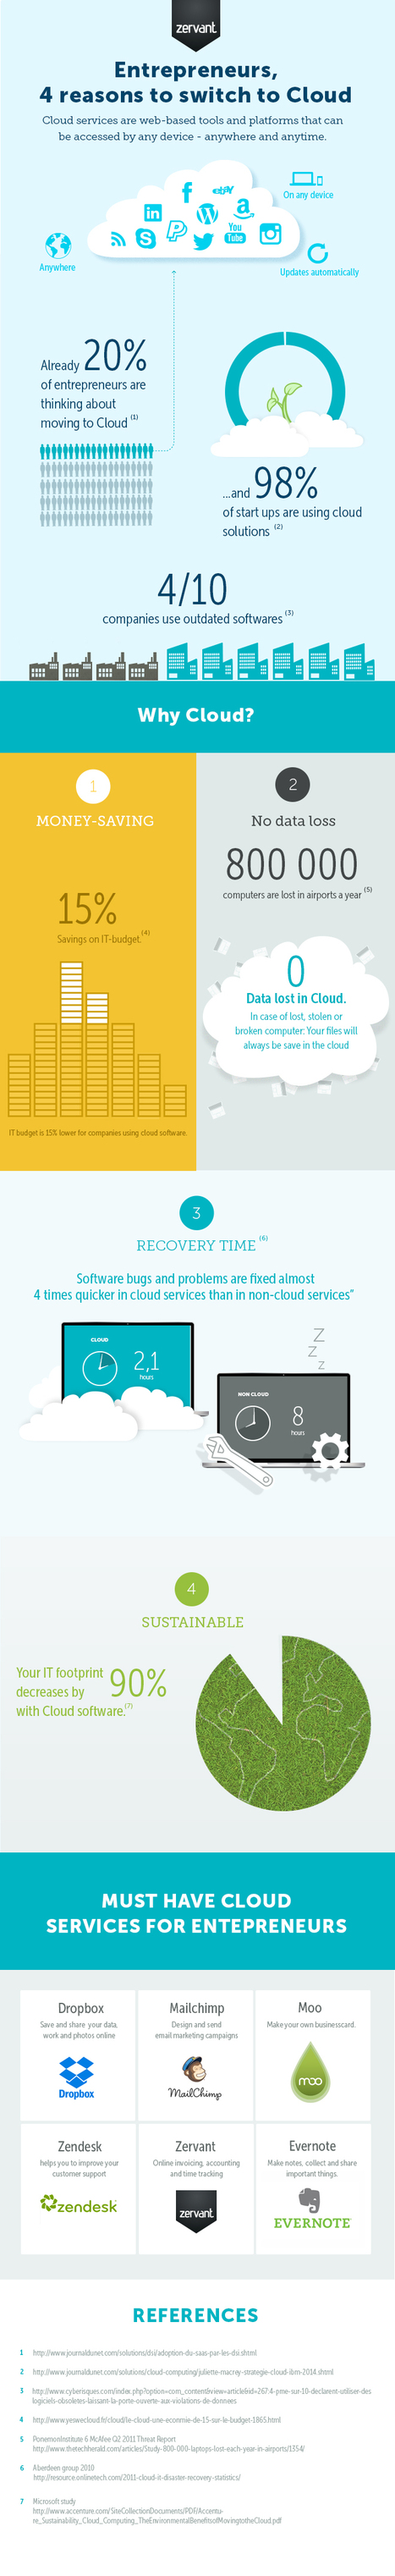 INFOGRAPHIC: Entrepreneurs, 4 reasons to switch to cloud | Cloud Central | Scoop.it